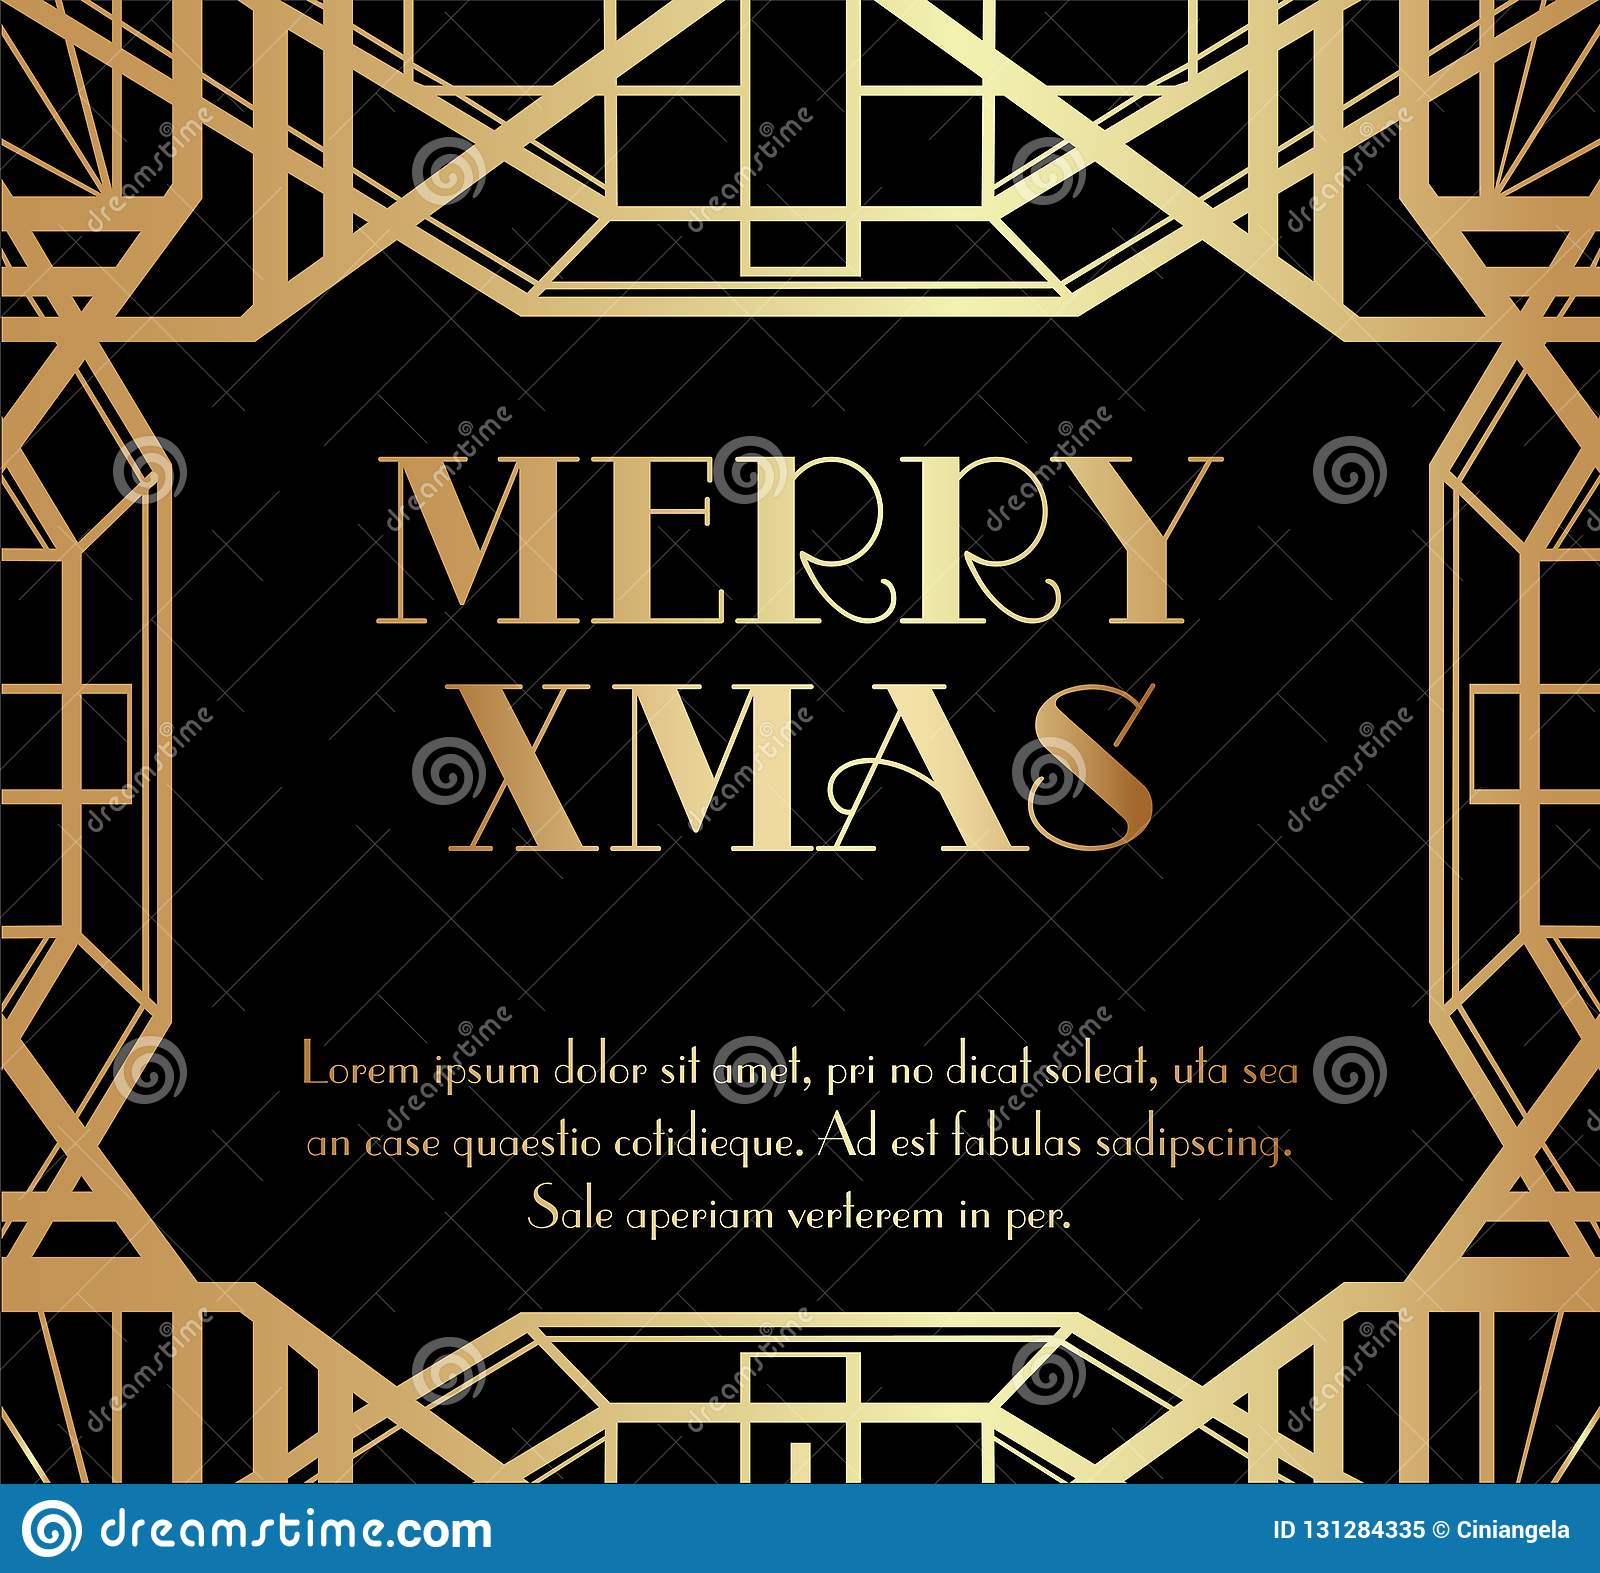 Joyeux Noël Ou Noël Art Deco Invitation Design Illustration